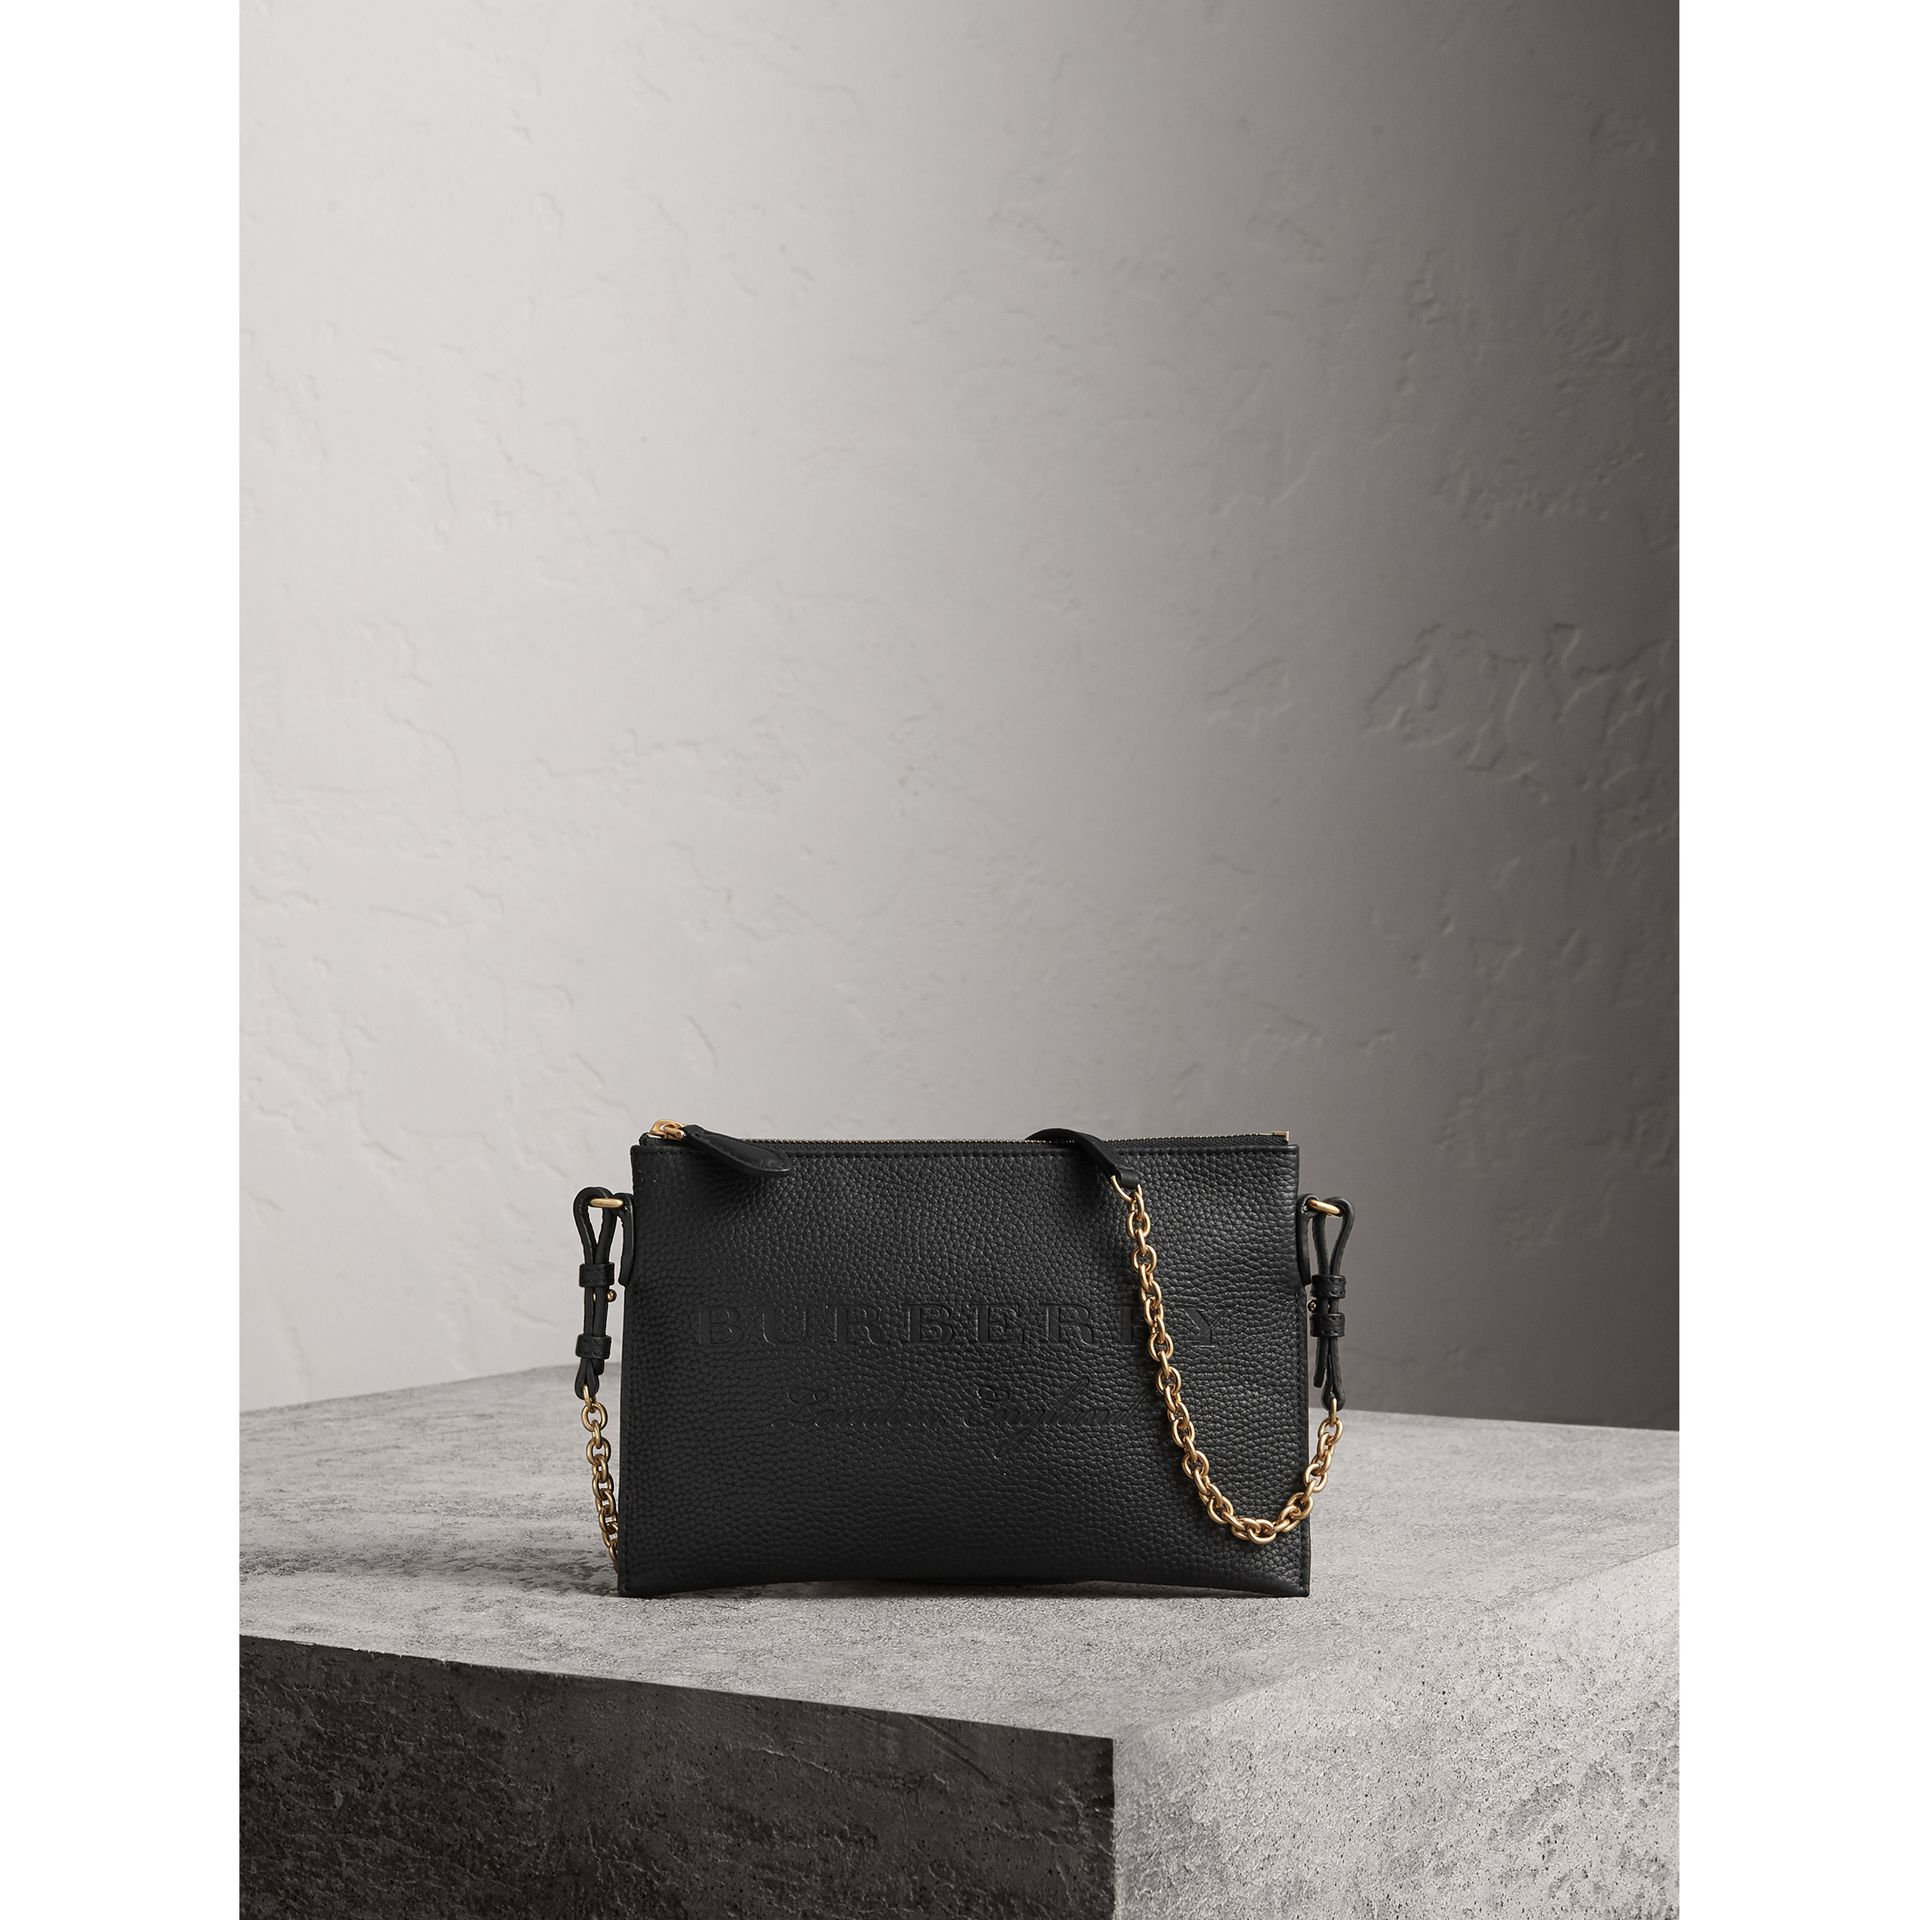 Embossed Leather Clutch Bag in Black - Women | Burberry - gallery image 1